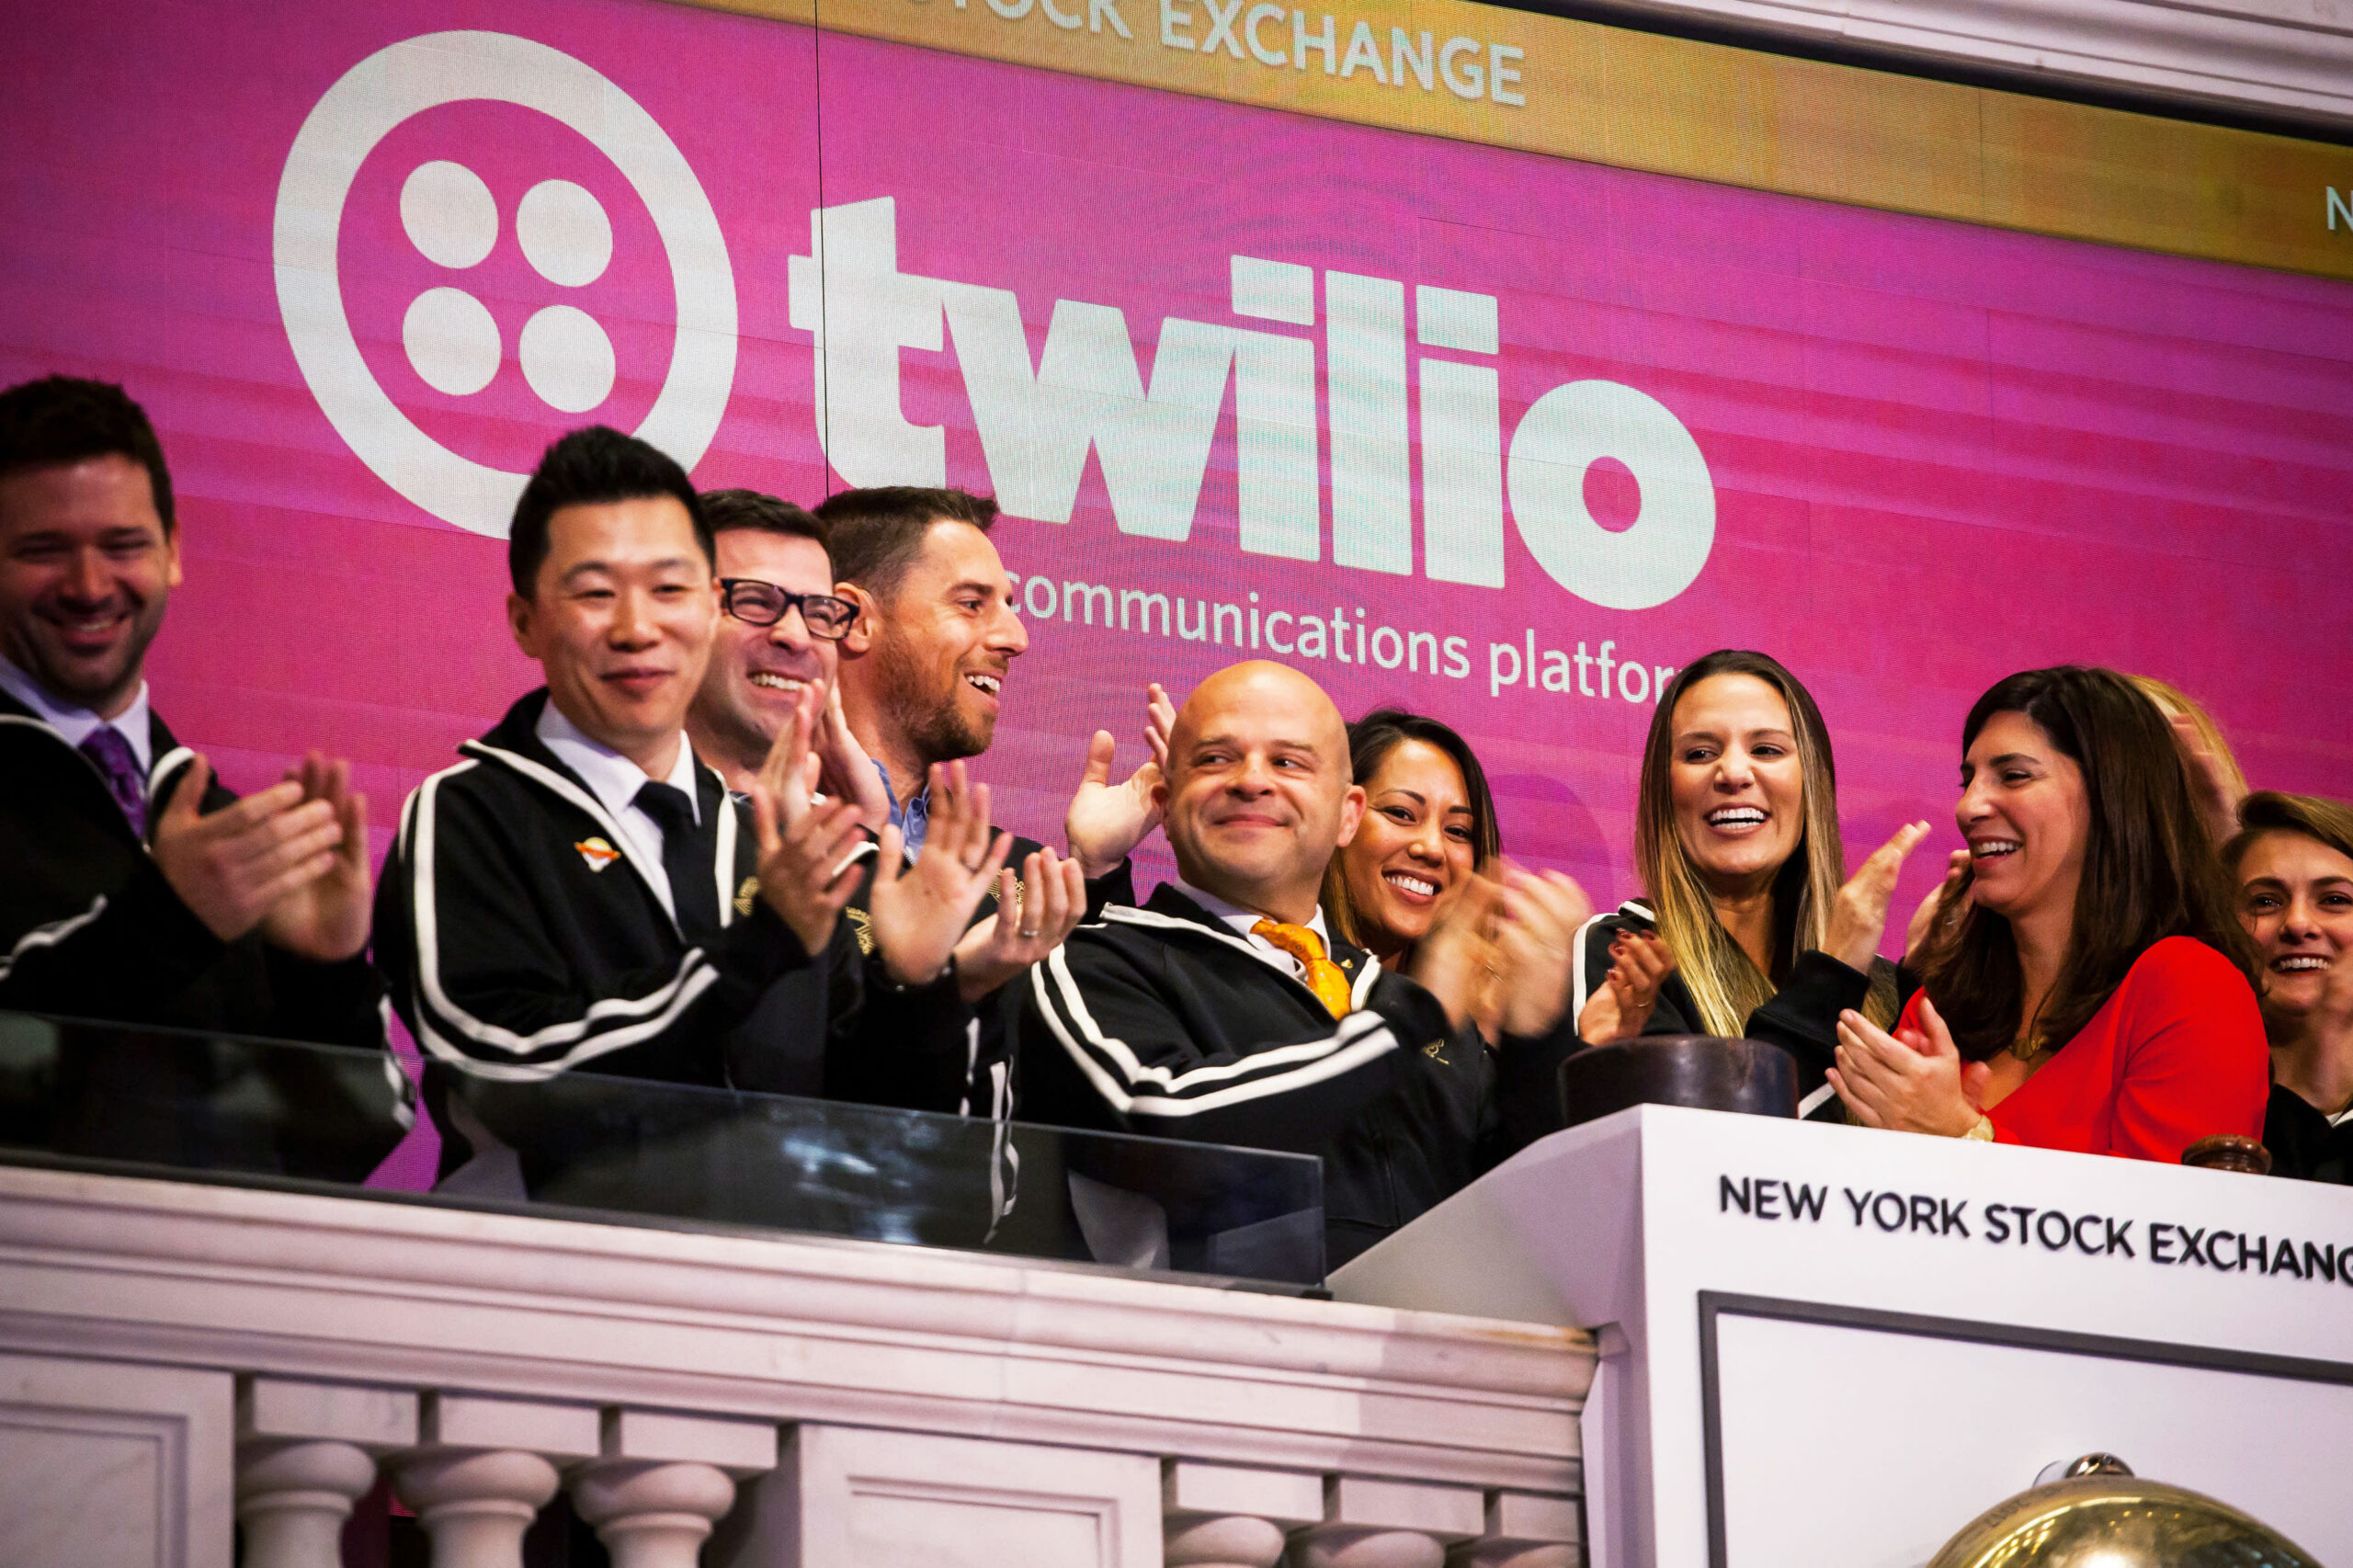 High Road analysts see Sq. & Twilio as long-term winners